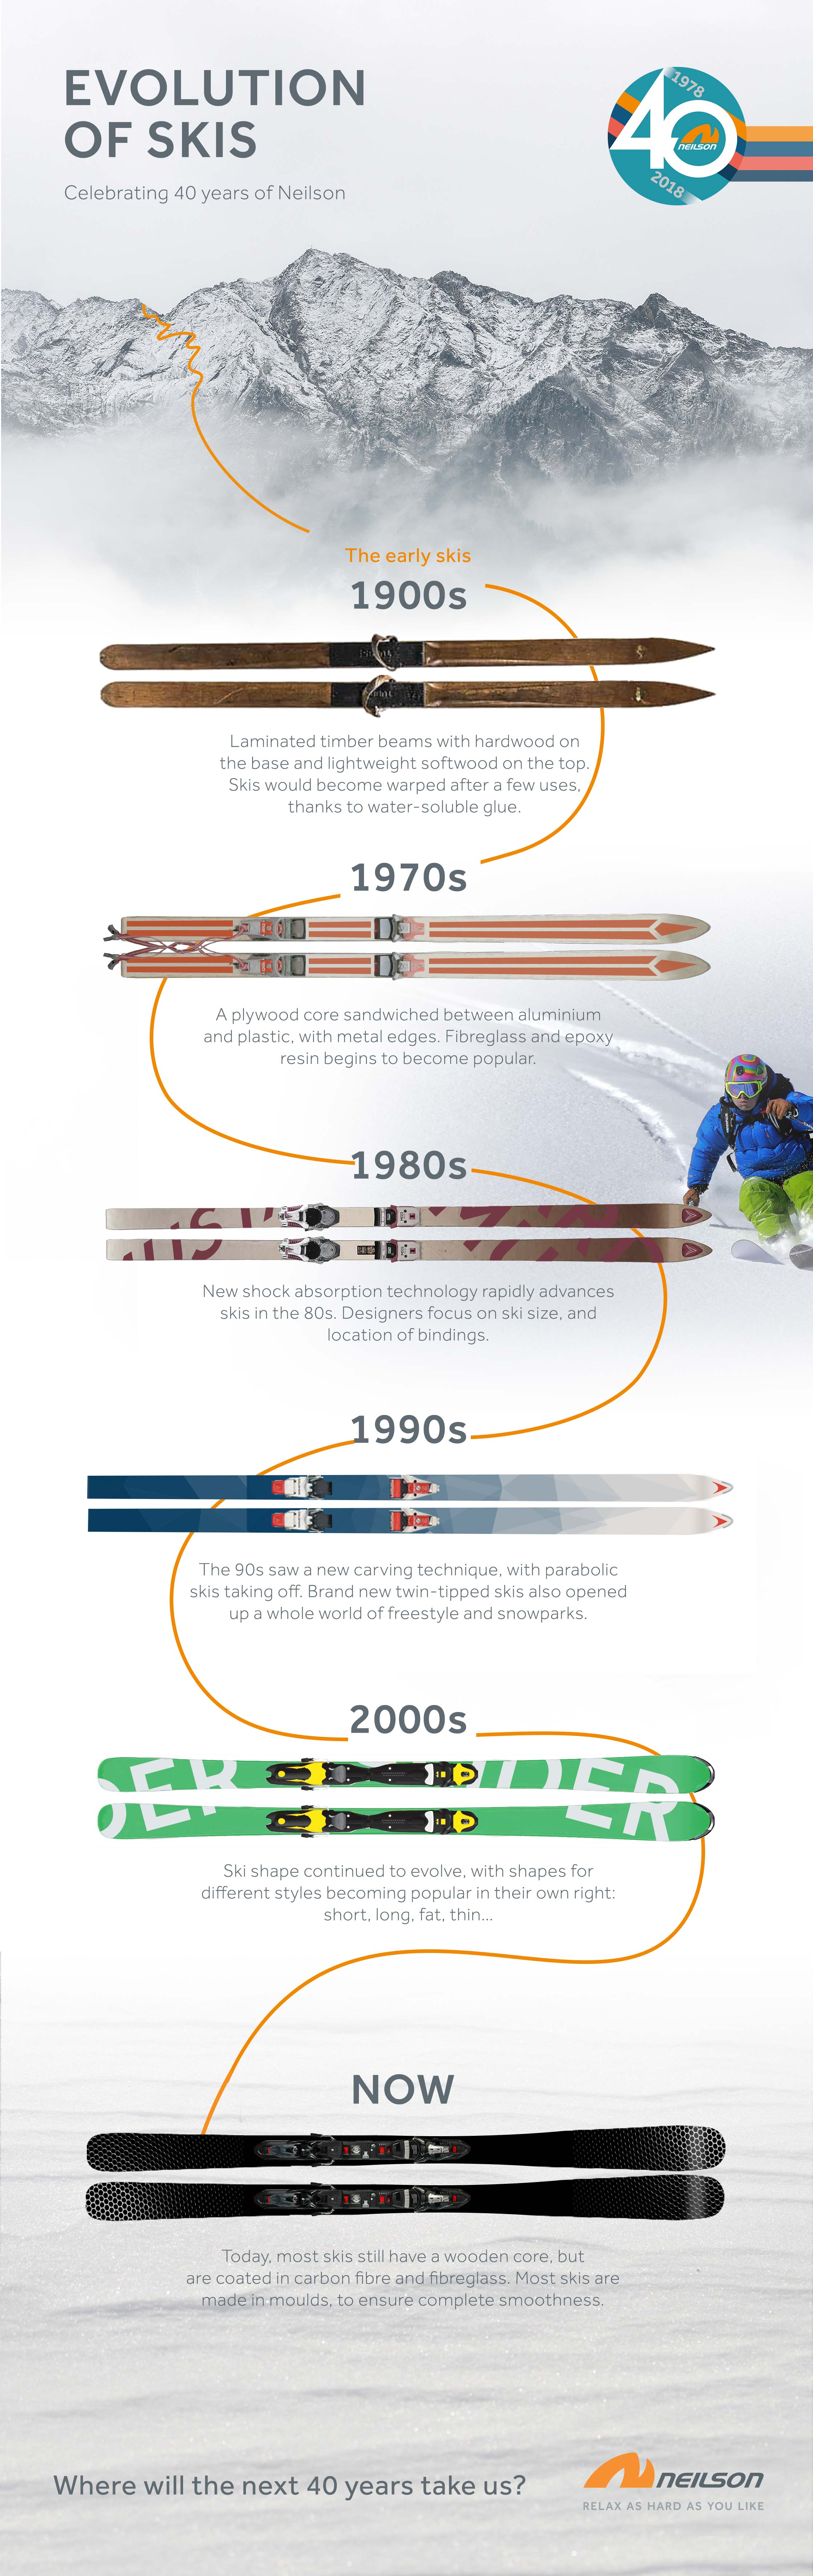 Evolution of Skis Infographic